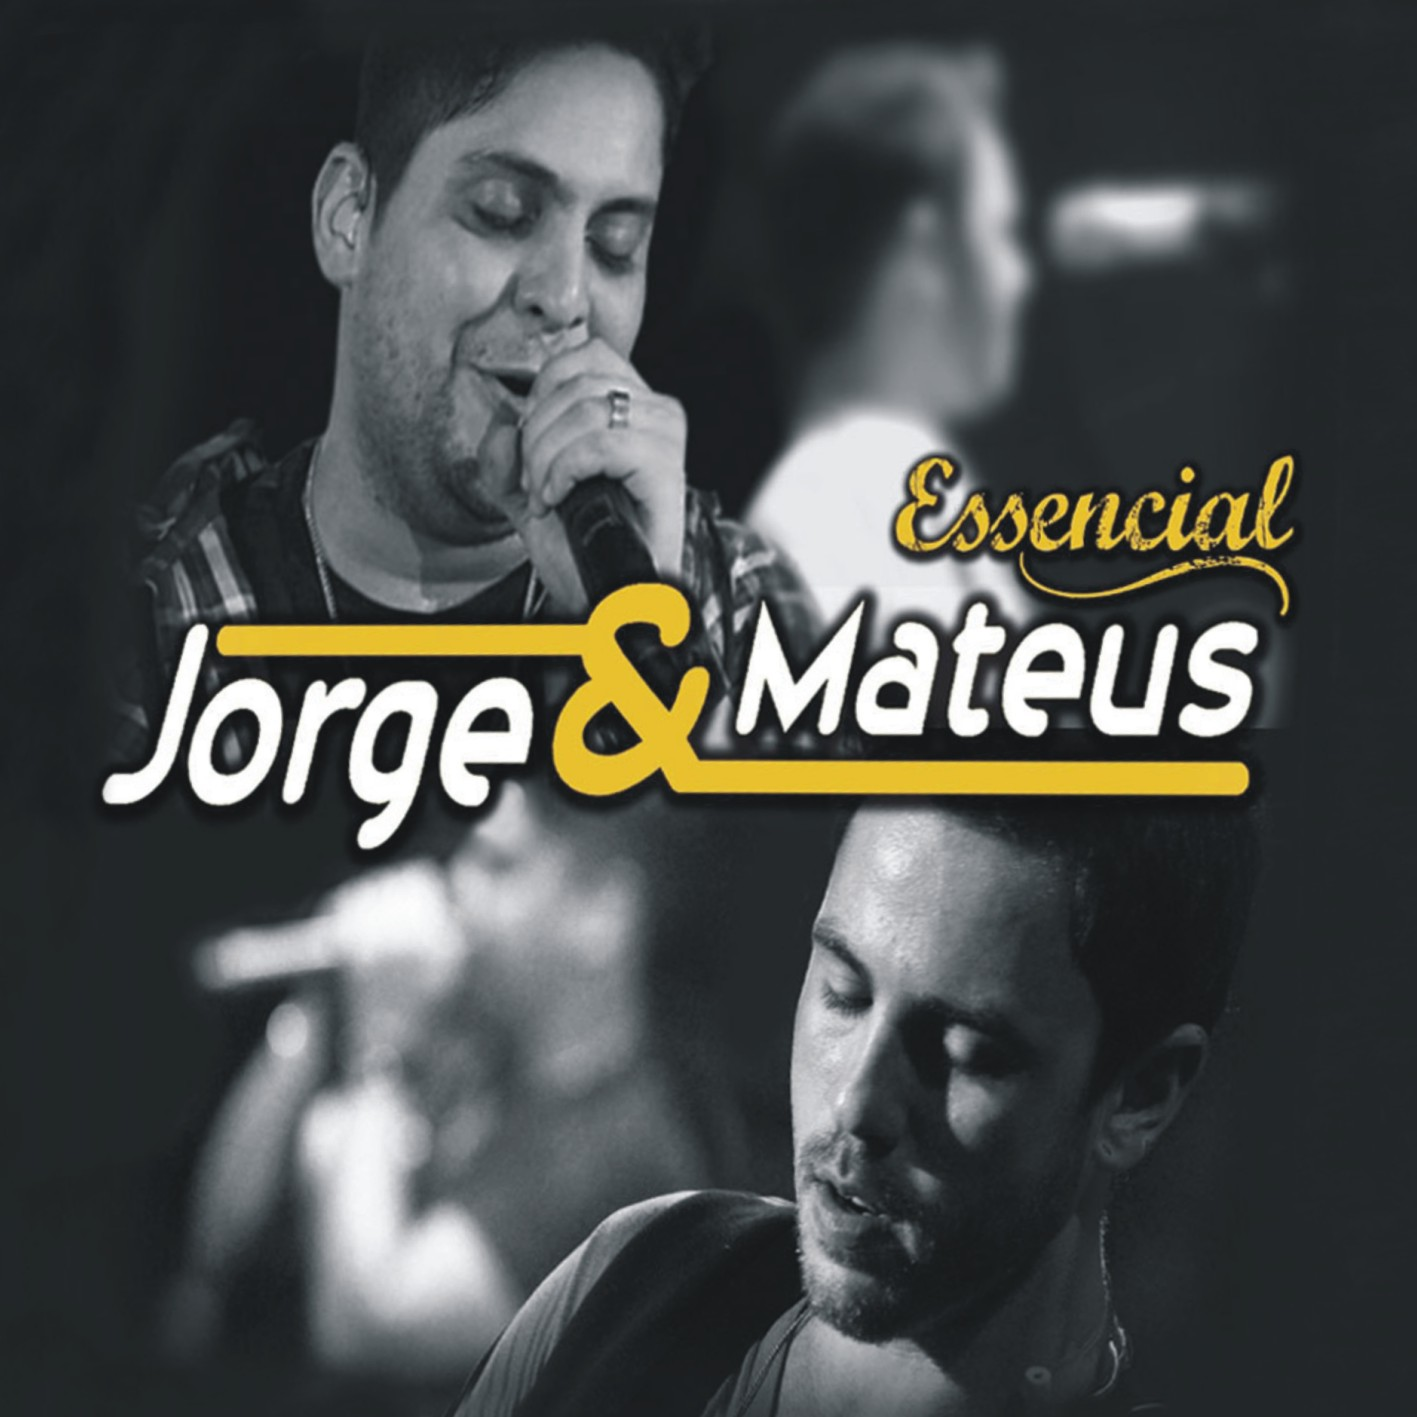 www.superdownload.us=Jorge+&+Mateus+ +Essencial+ +2012 Baixar CD Jorge & Mateus   Essencial   2012